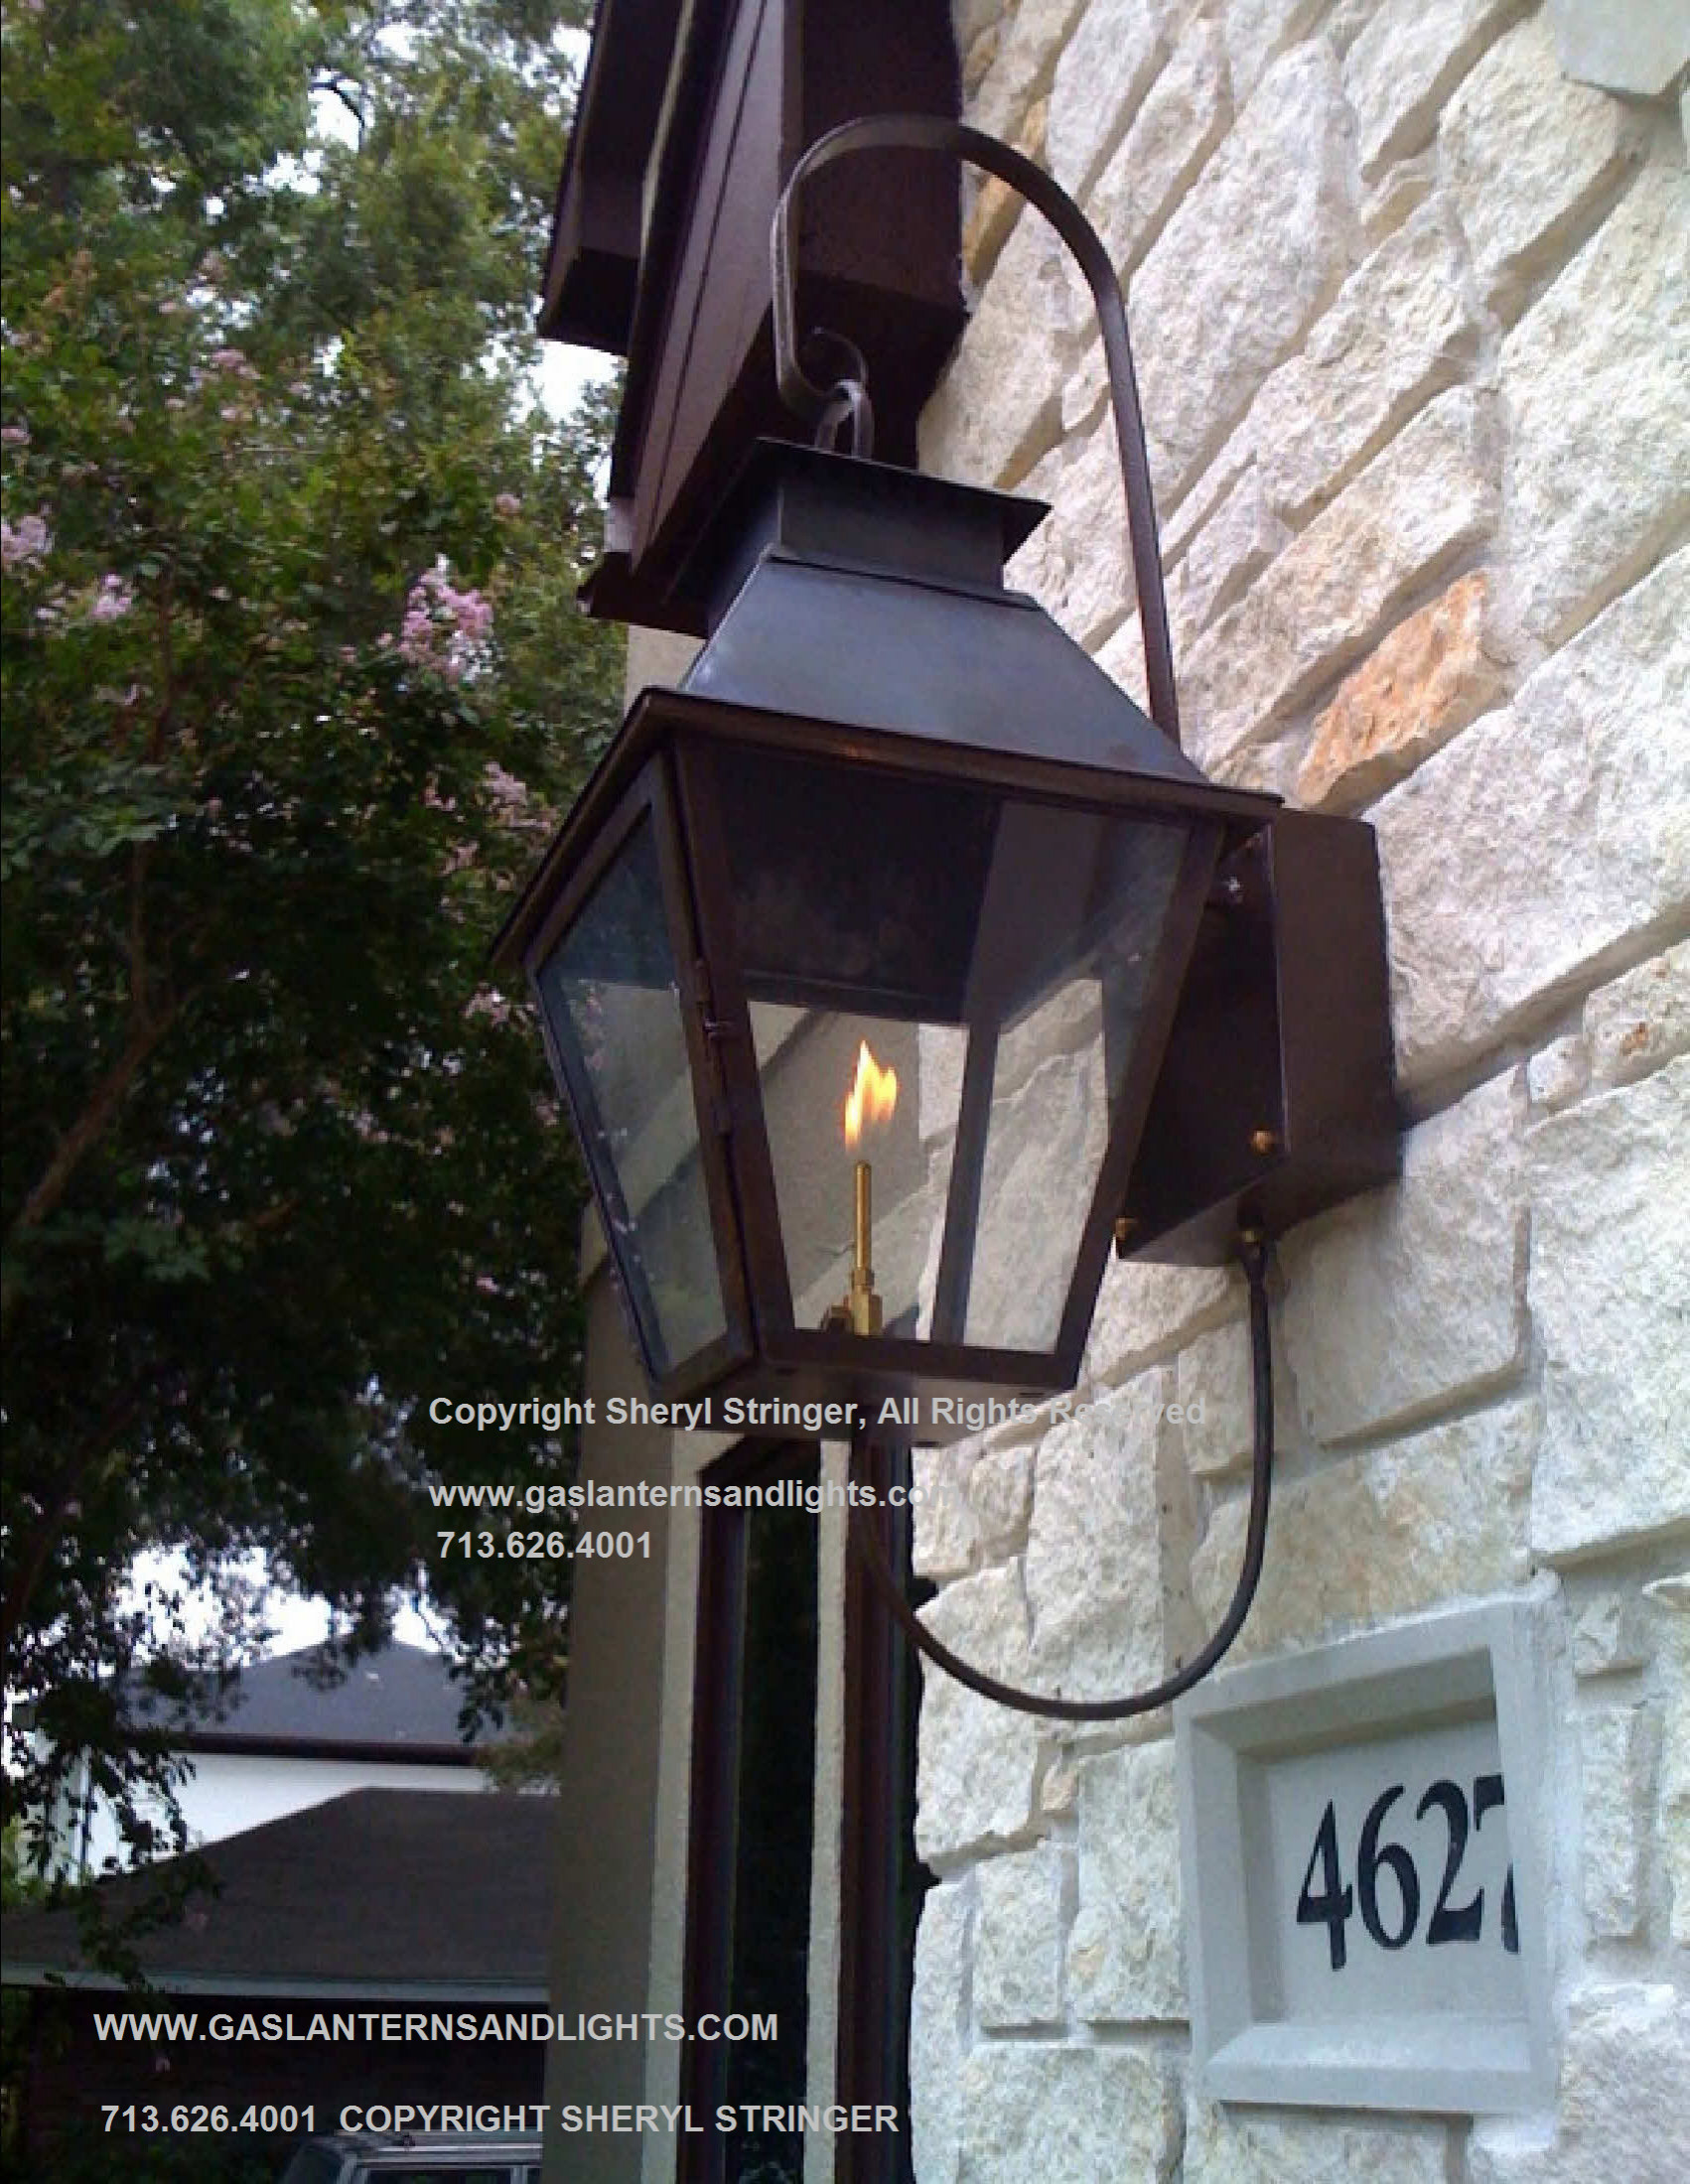 Sheryl's V Style Gas Lantern on Steel Bracket with Curl